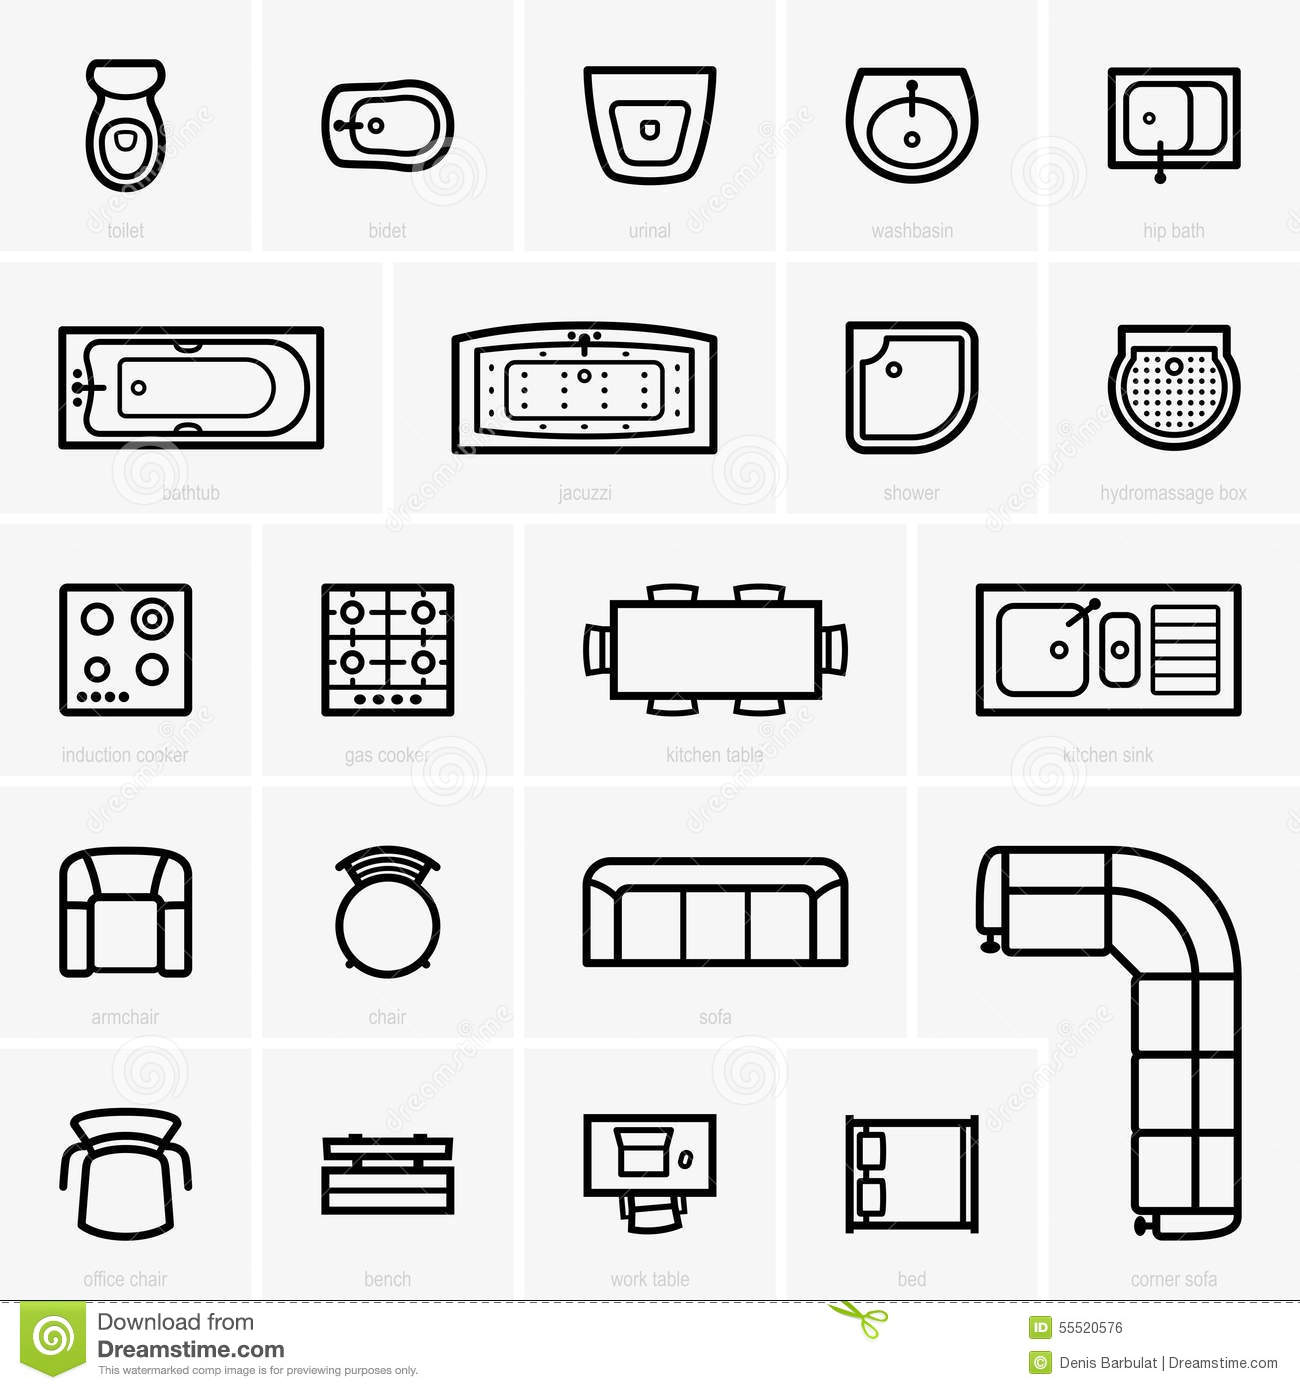 100 How To Read Floor Plans Symbols How To Read A